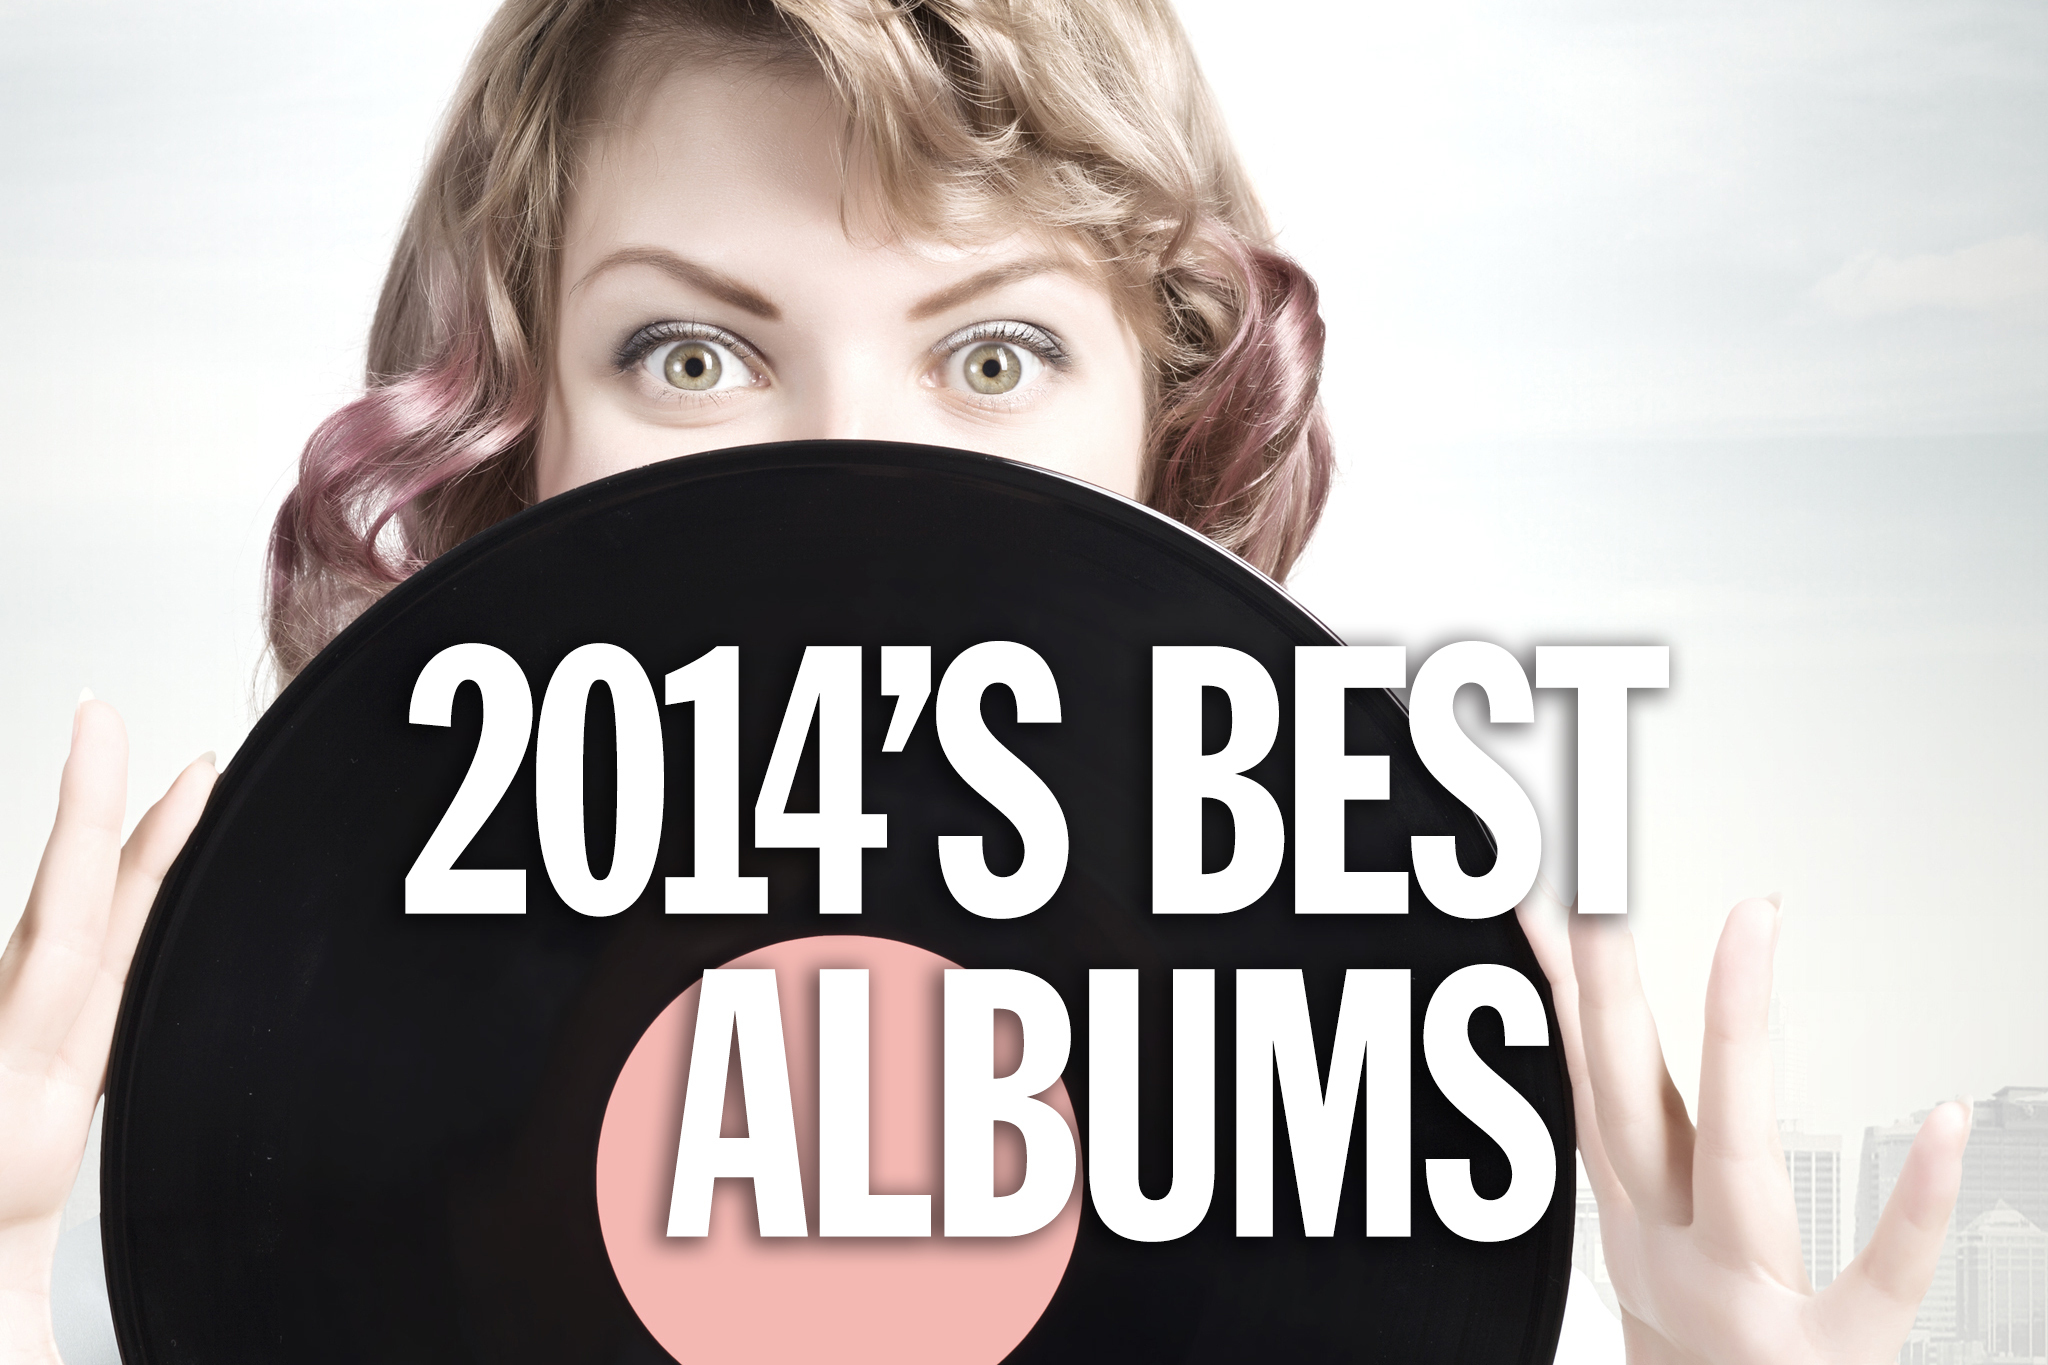 The 20 best albums of 2014